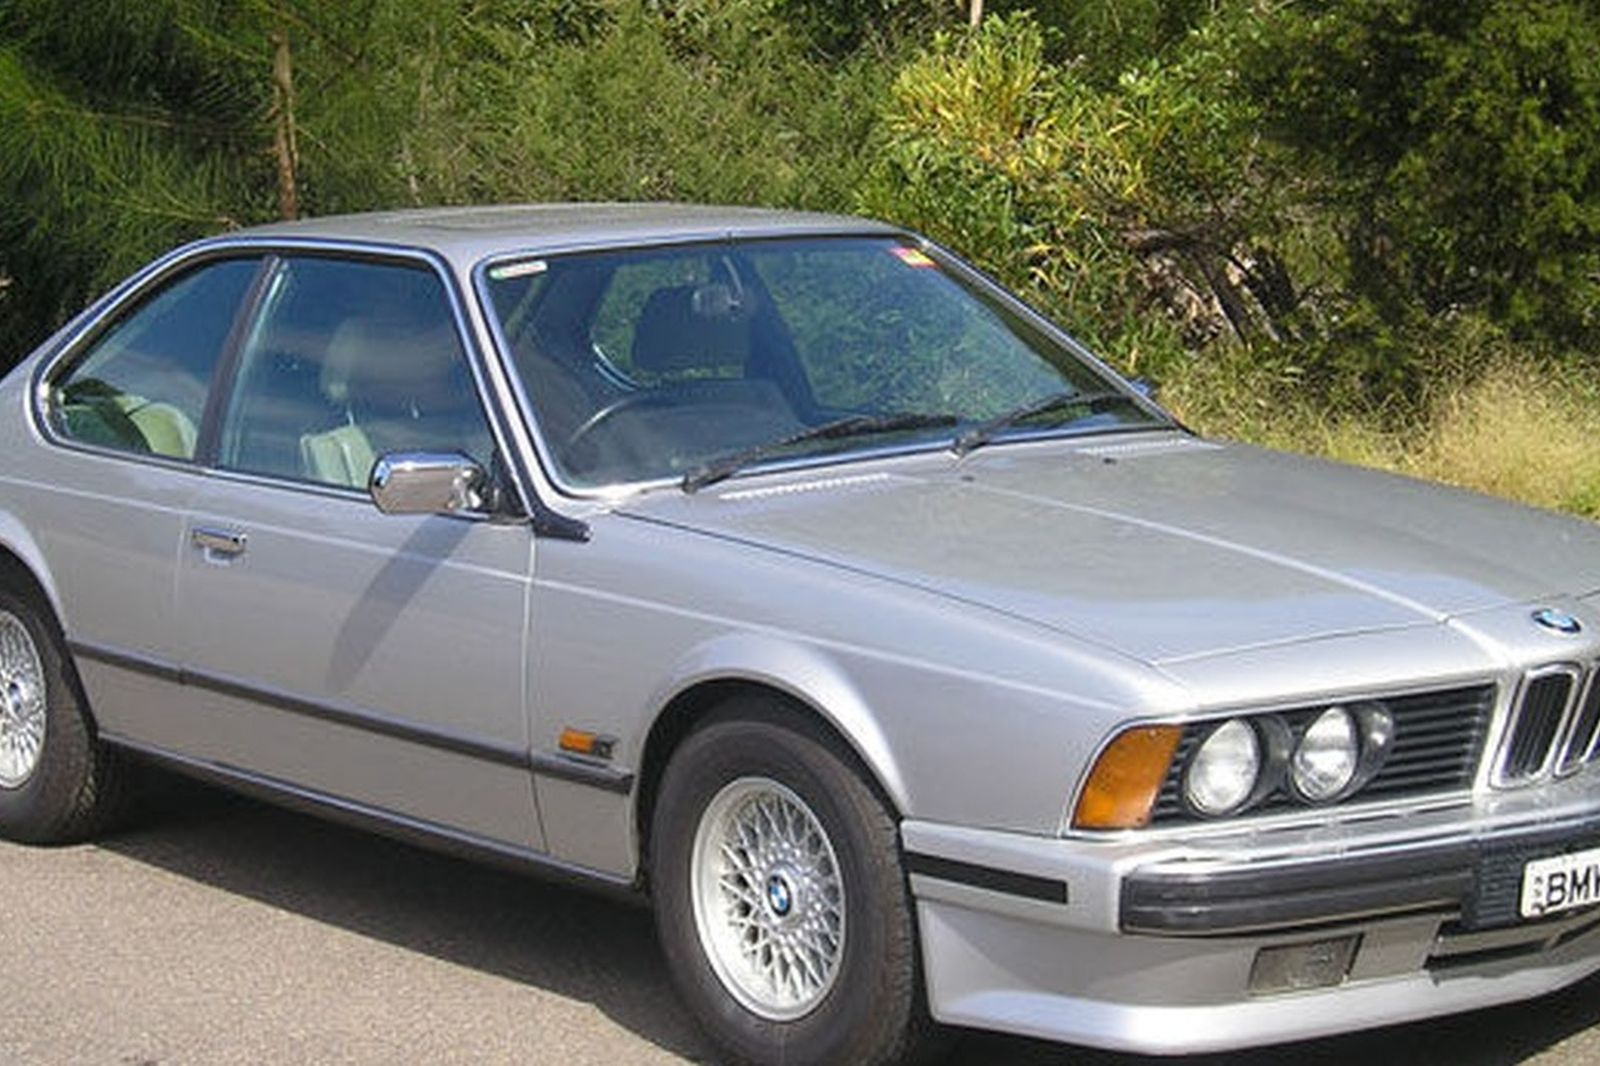 1983 bmw 635 csi coupe sold bmw 635 csi coupe auctions lot 26 shannons E24 633CSi at edmiracle.co